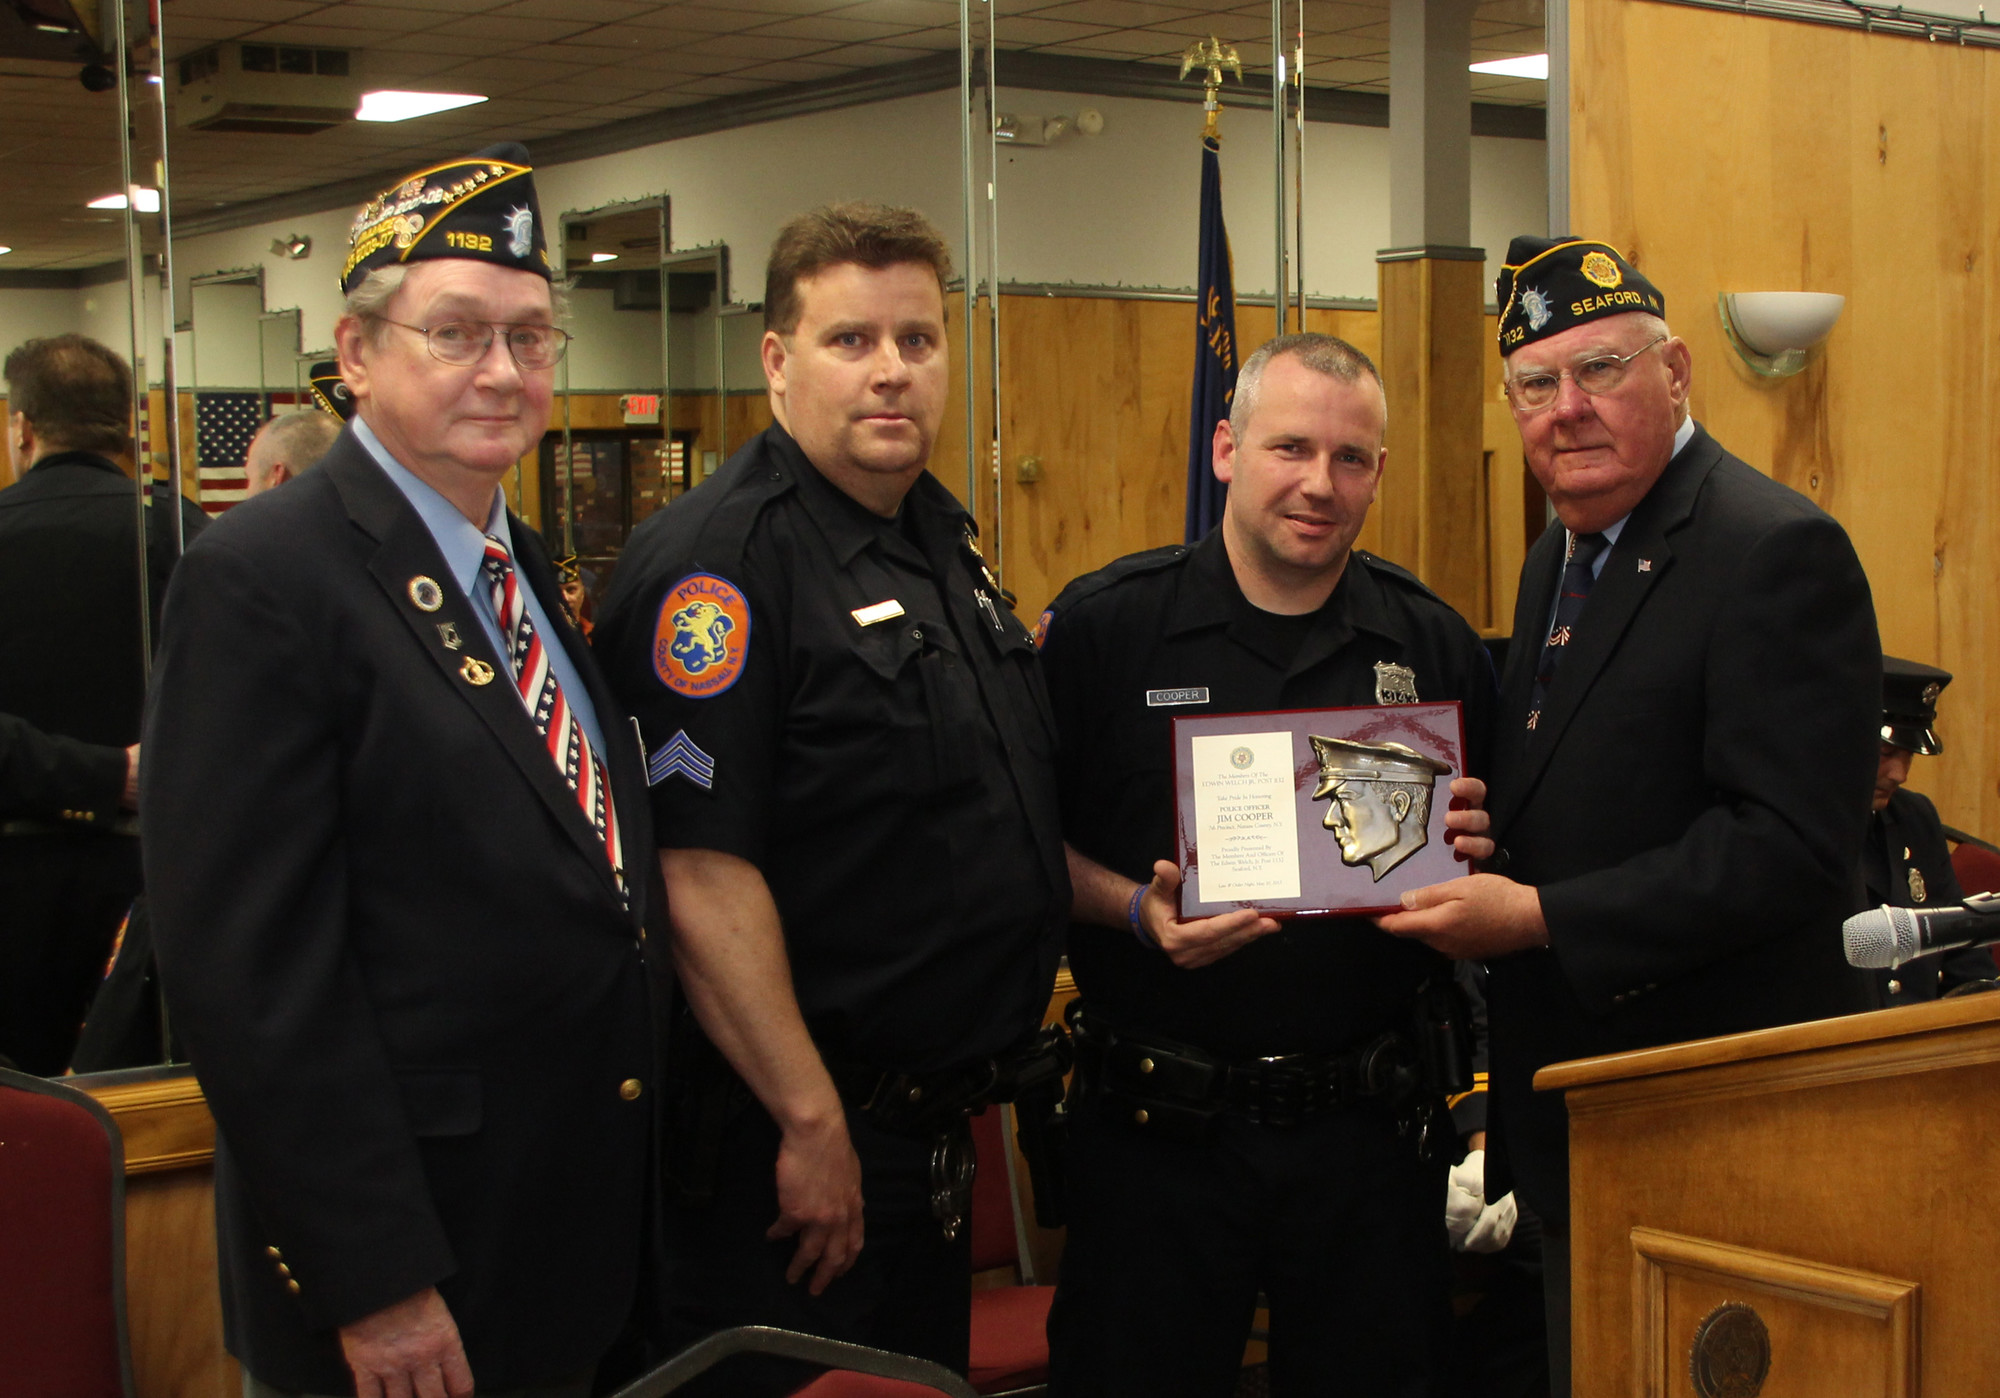 Officer Jim COoper, second from right, of the Nassau County Police Department's 7th Precinct, was one of the honorees and was presented his award from American Legion Chaplain Charles Wroblewski, right.